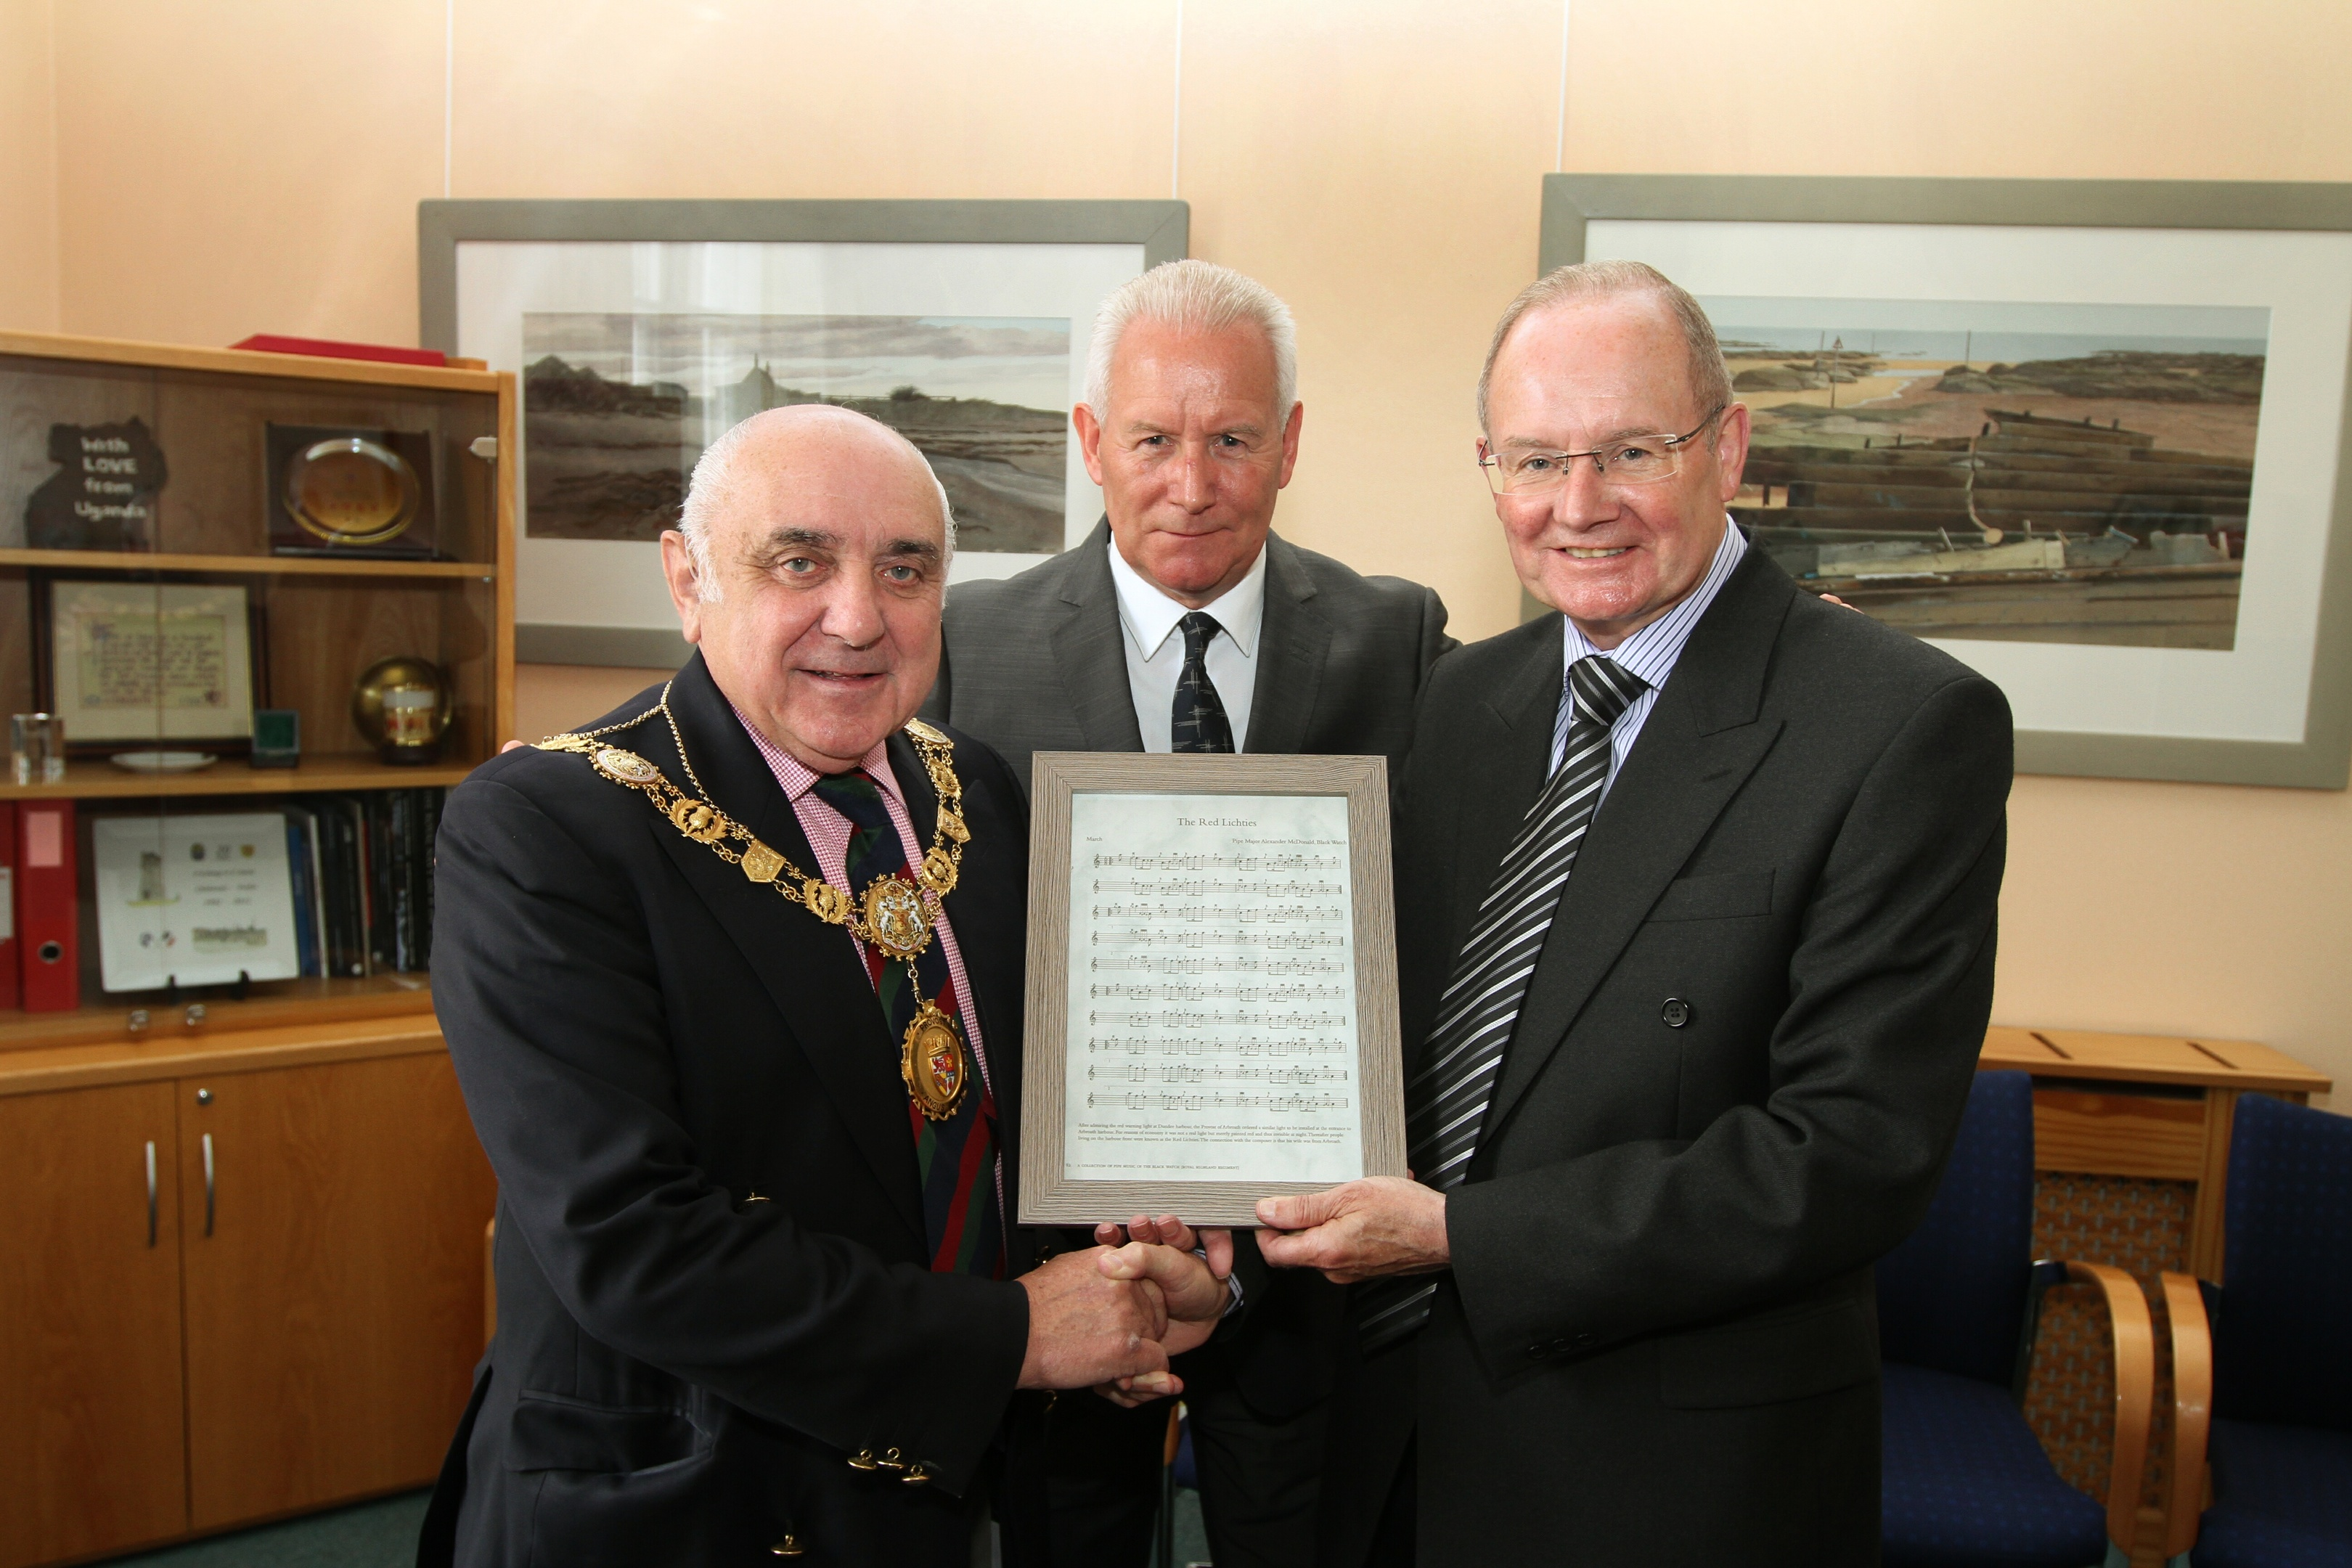 Angus Provost Ronnie Proctor, David and John Christison.